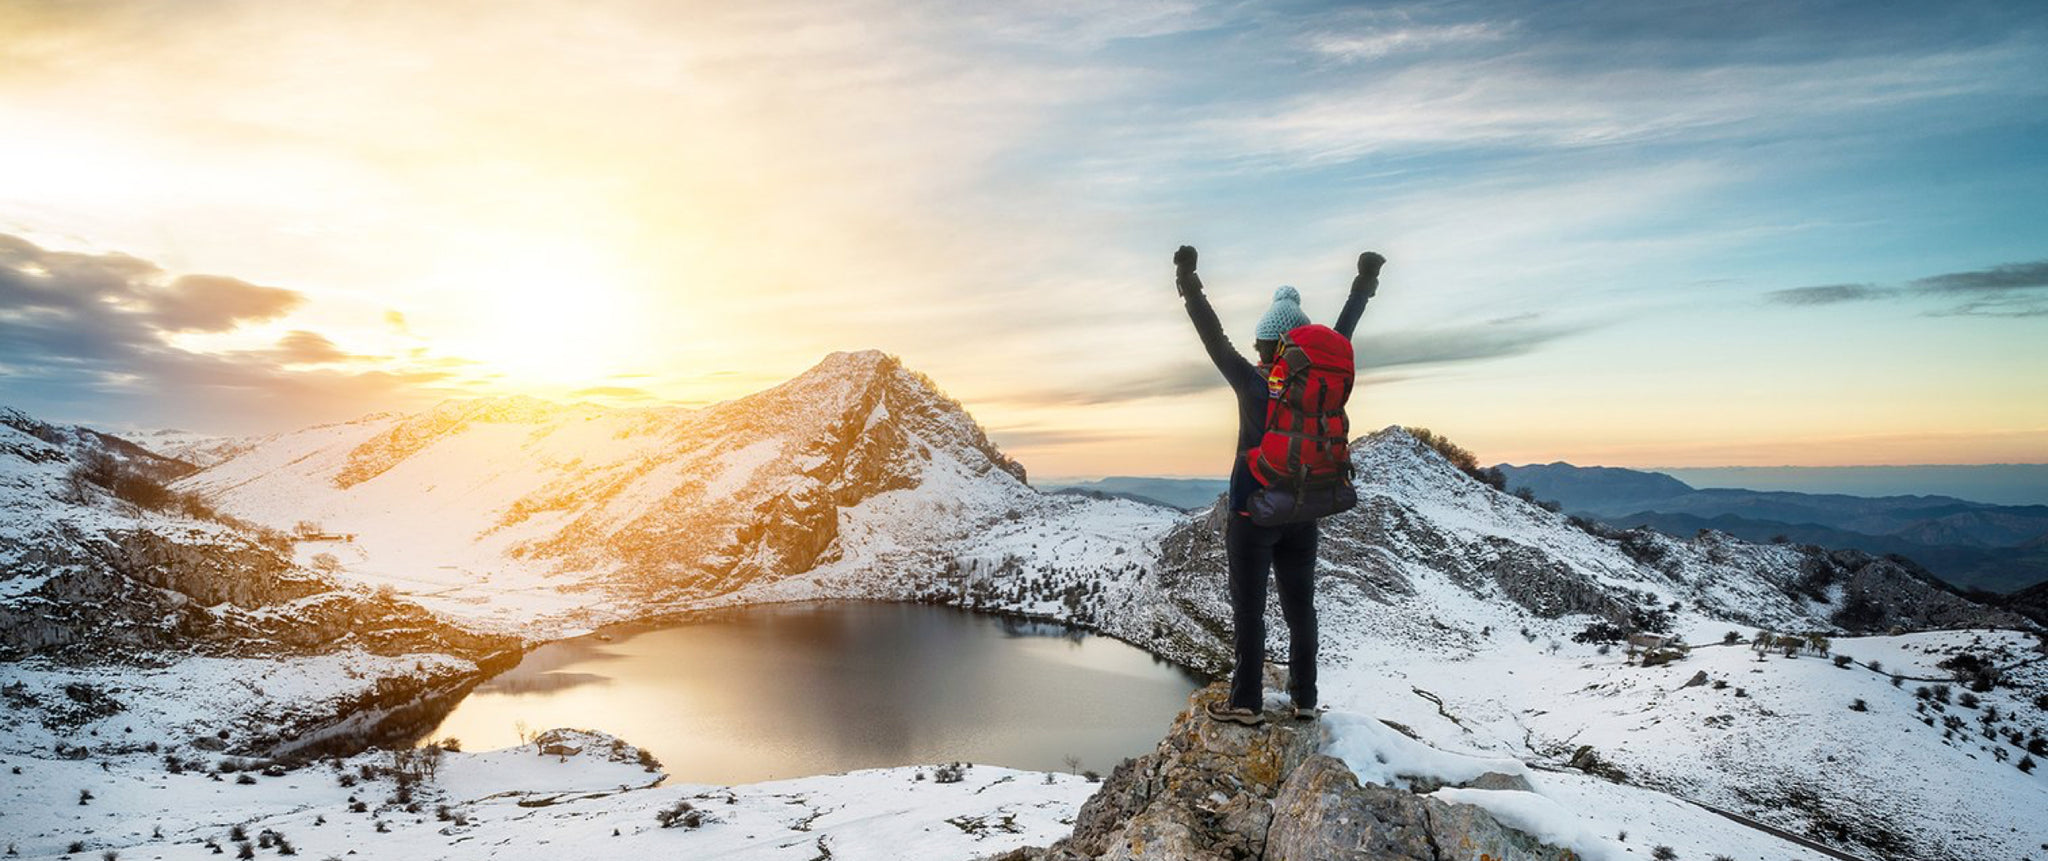 Hiker standing at the edge of a mountain ridge with their hands in the air. They are overlooking snowy mountains and a body of water at sunset